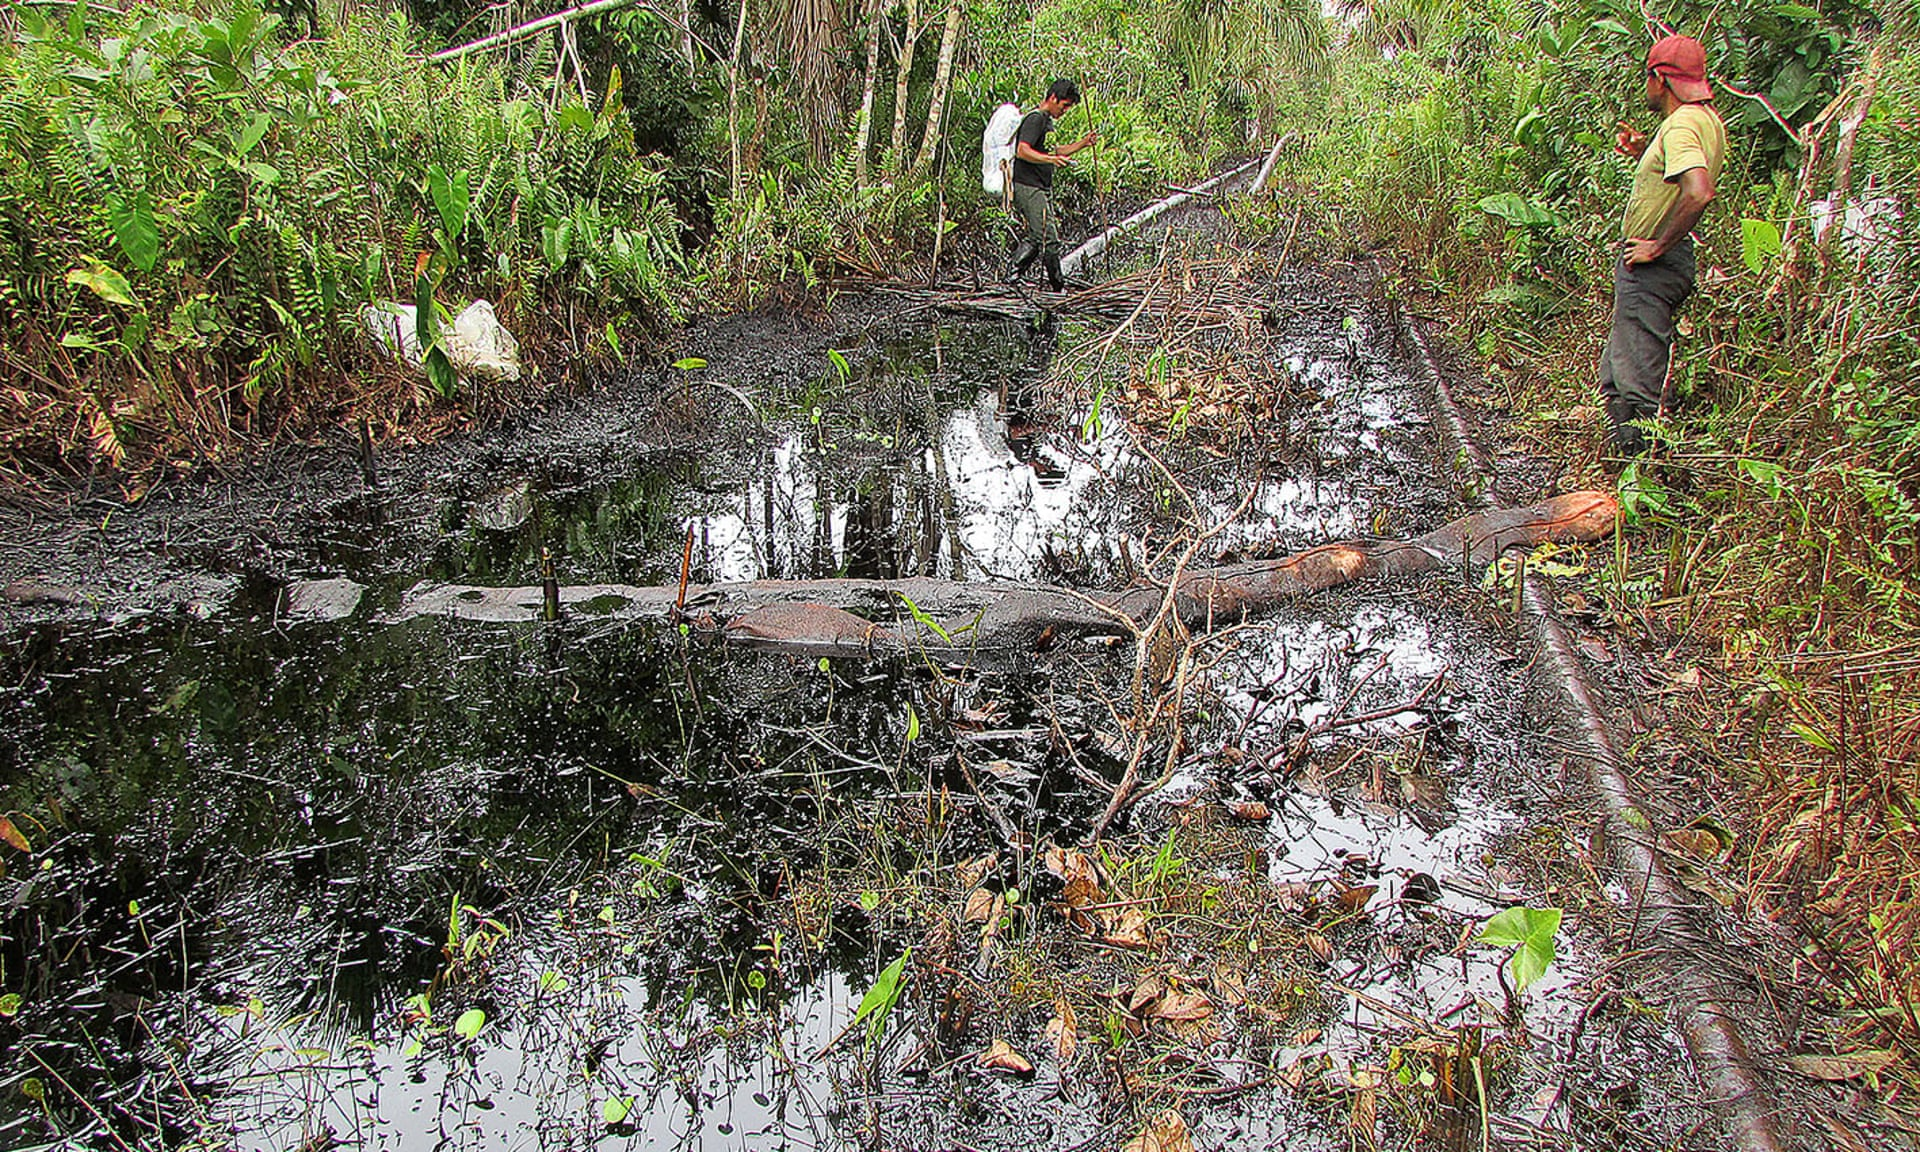 An oil spill in Lot 8, run by Pluspetrol, in 2013. Photograph: ACODECOSPAT